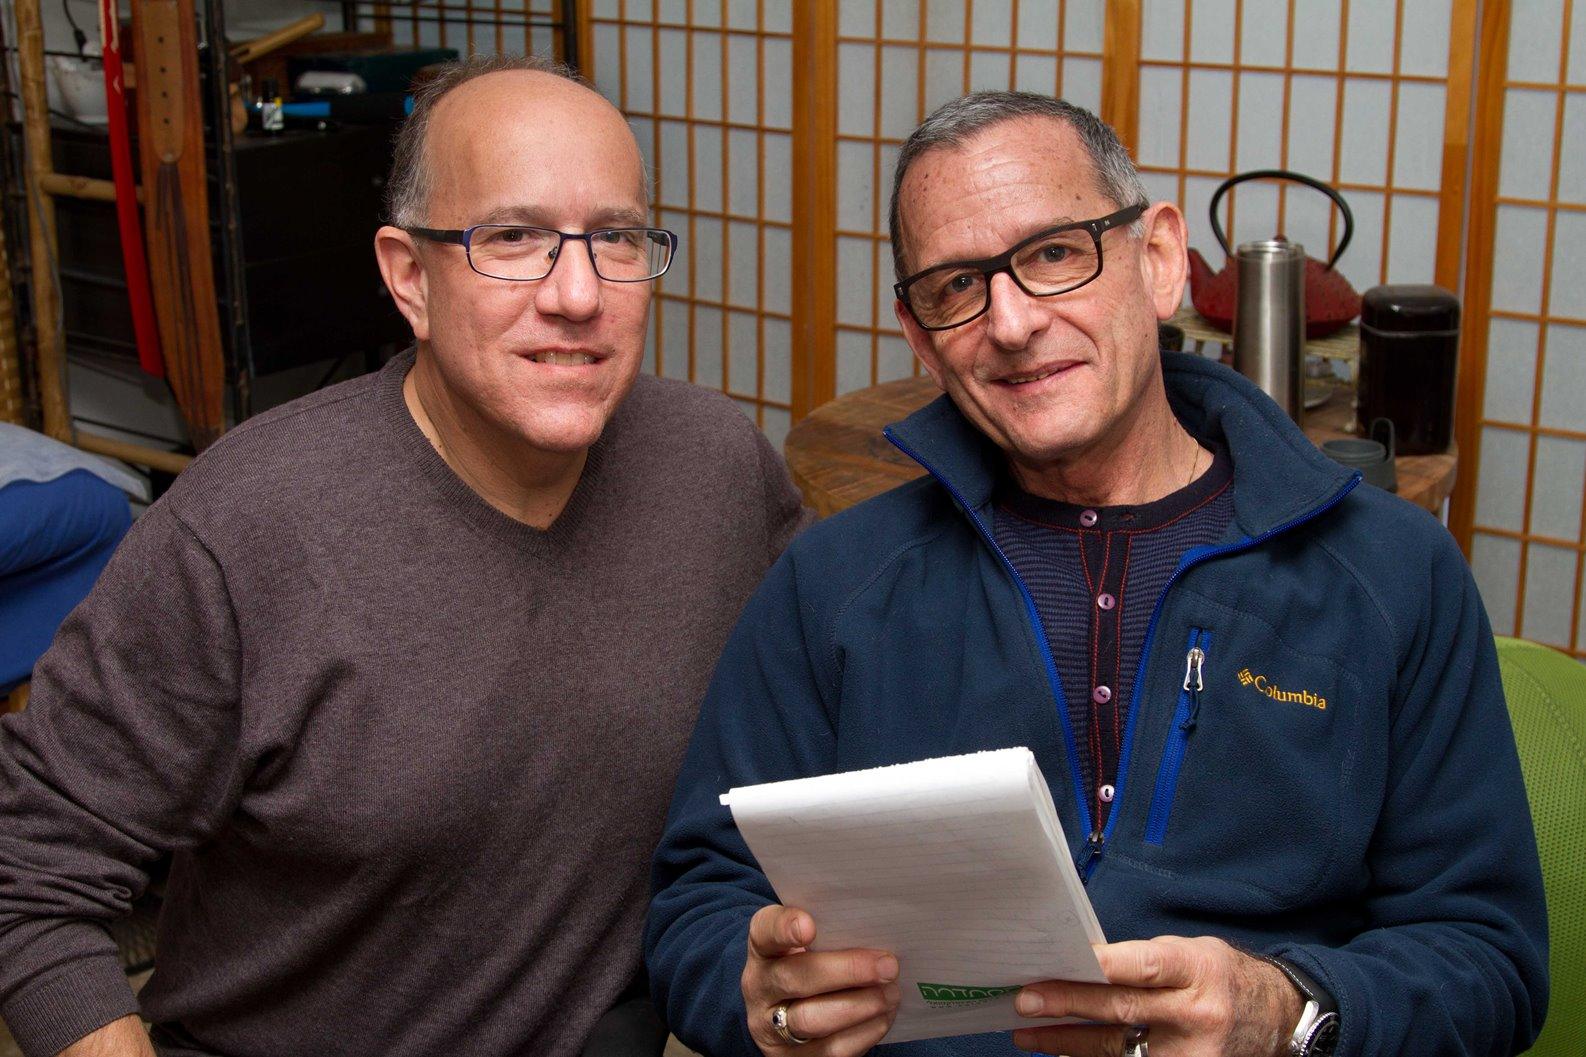 Goodbye Parkinson's, Hello Life!: The Gyro-Kinetic Method for Eliminating Symptoms and Reclaiming Your Good Health coauthors David Brinn, left, and Alex Kerten. Photo by Debbie Zimelman